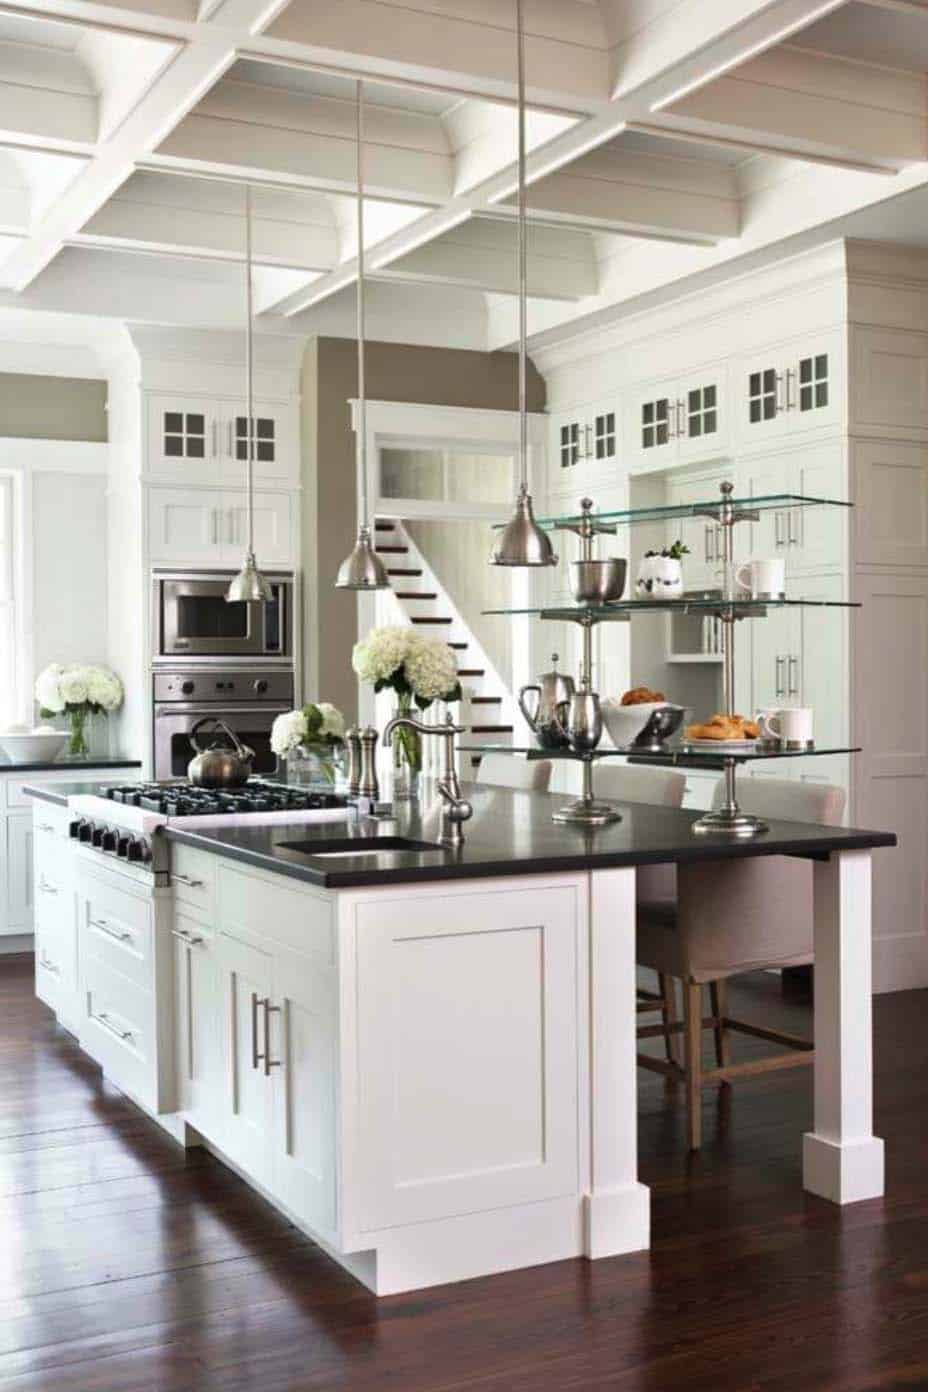 Kitchen Island Ideas-30-1 Kindesign